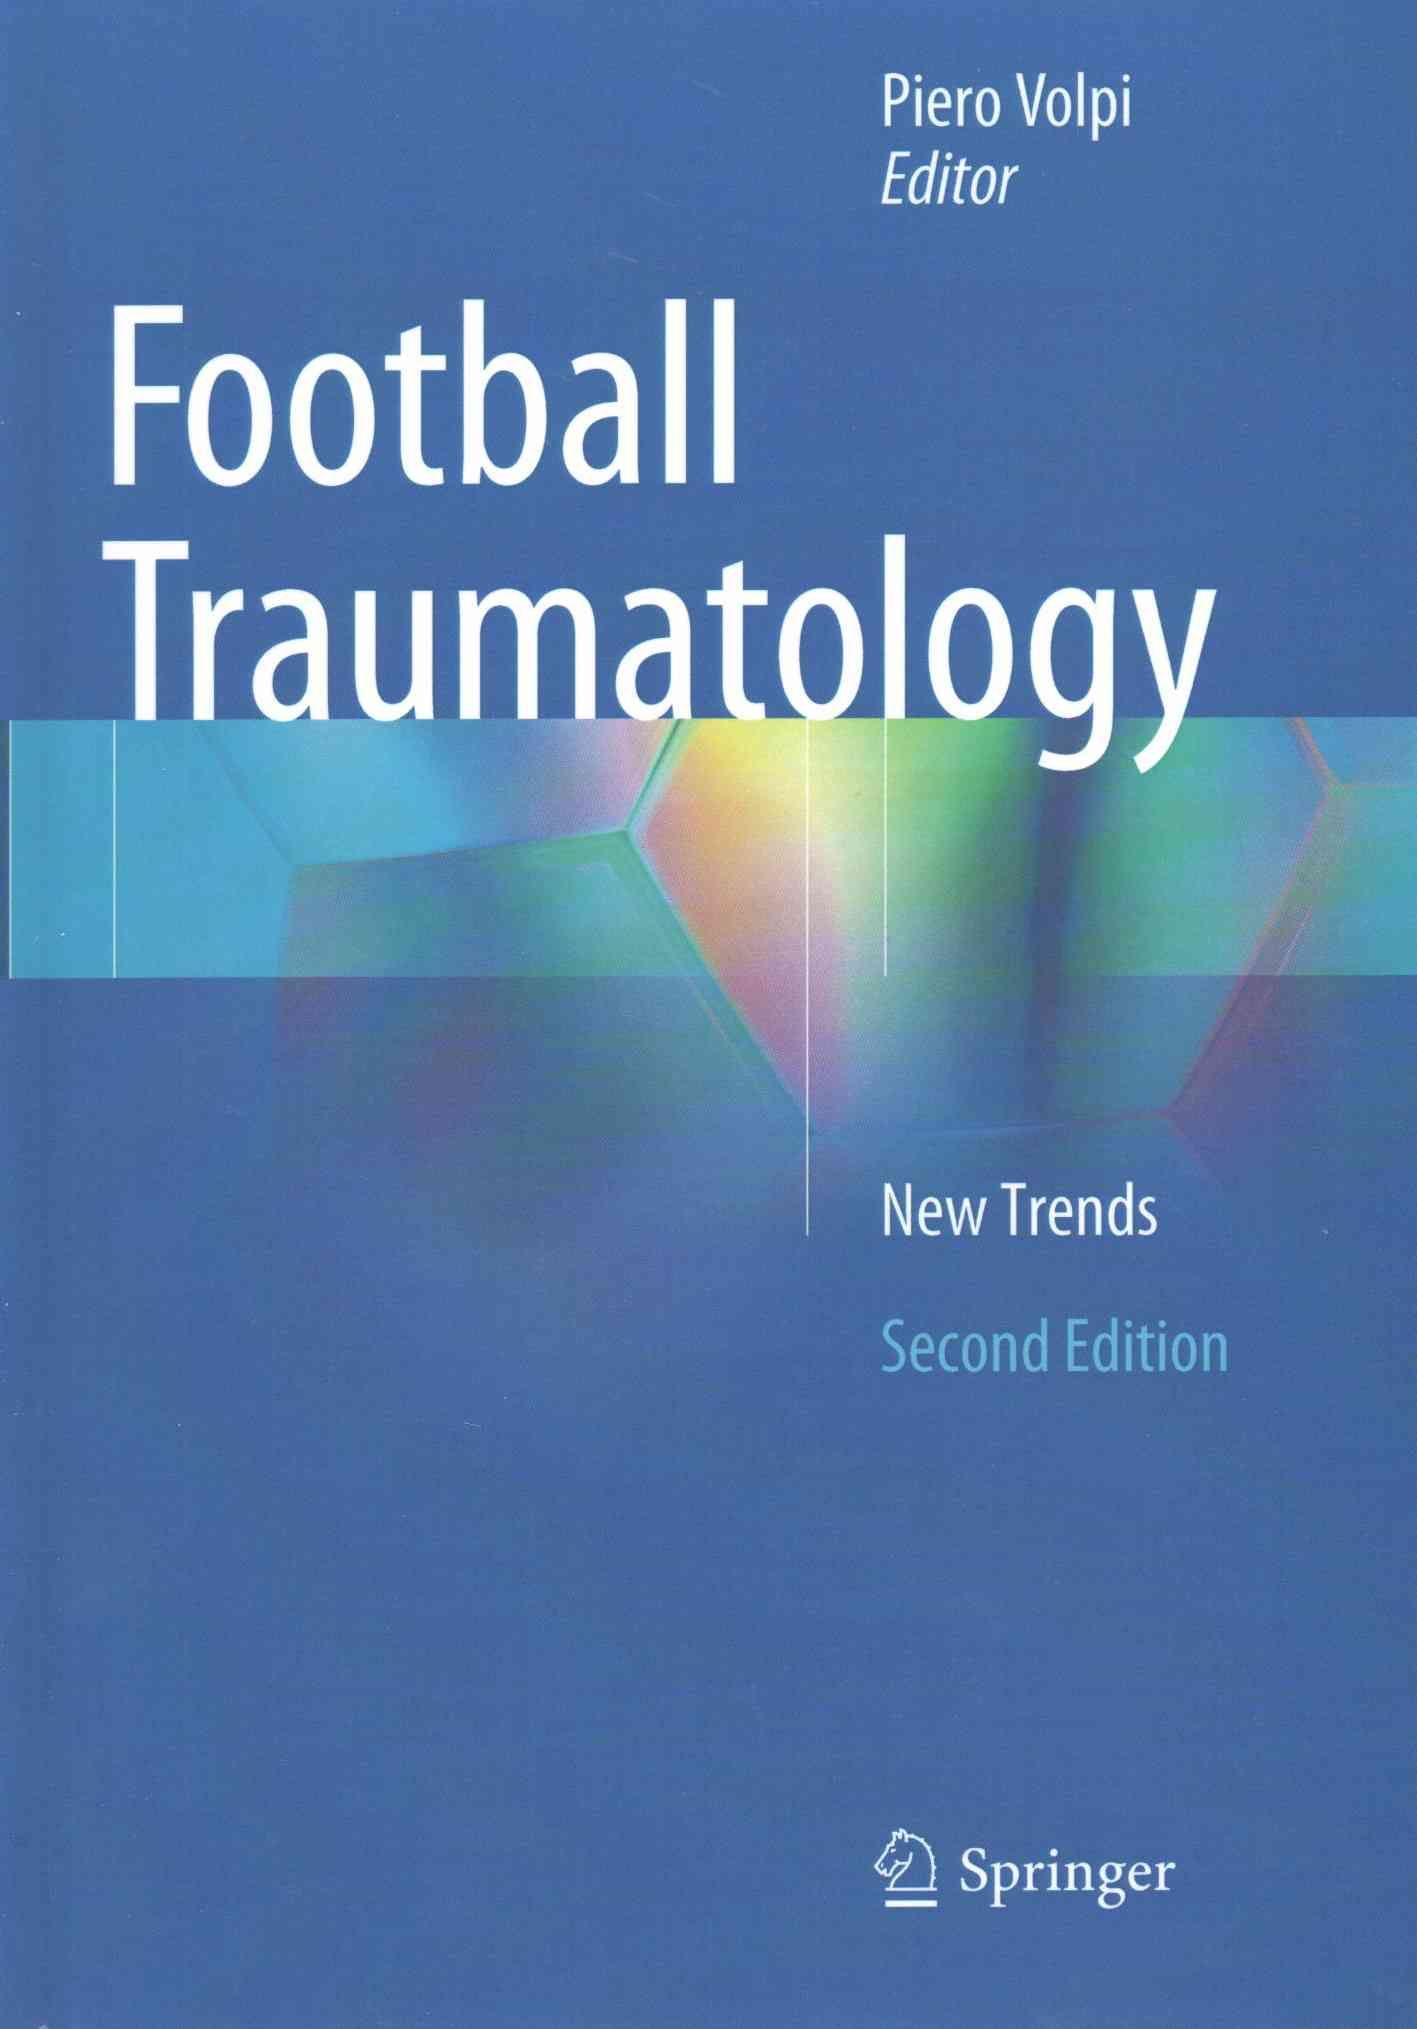 Football Traumatology: New Trends